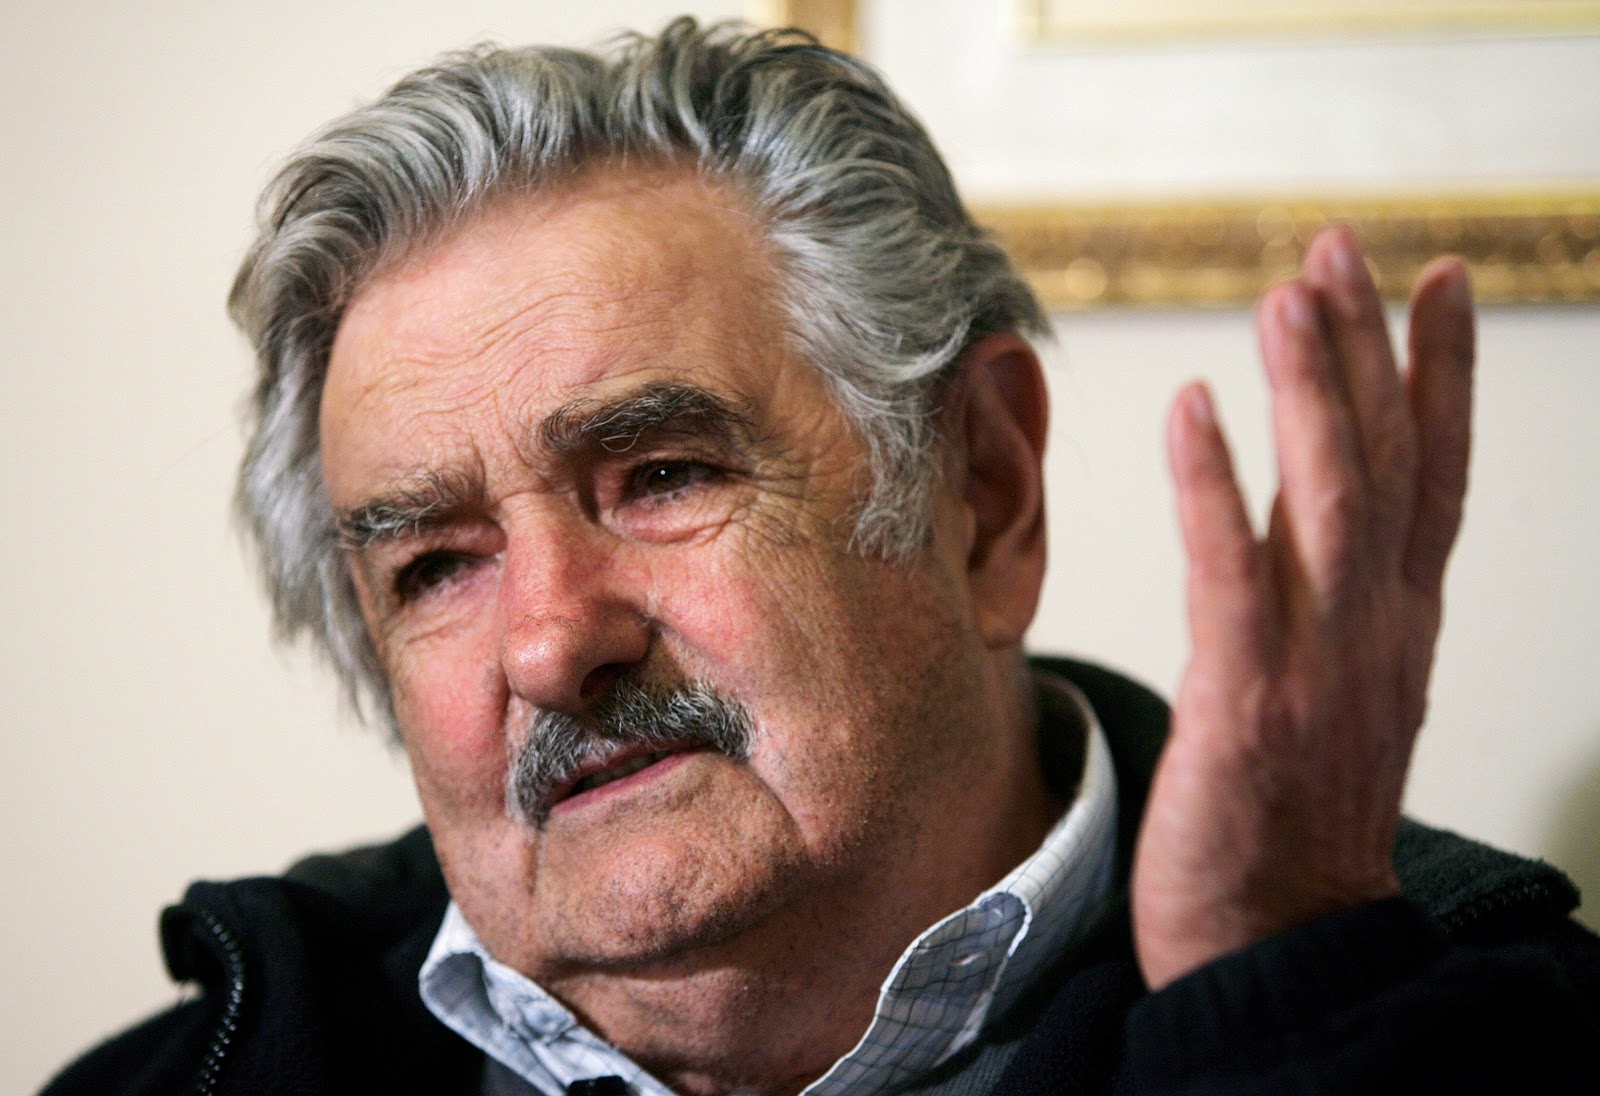 Jose Mujica president of Uruguay by Lt Blak